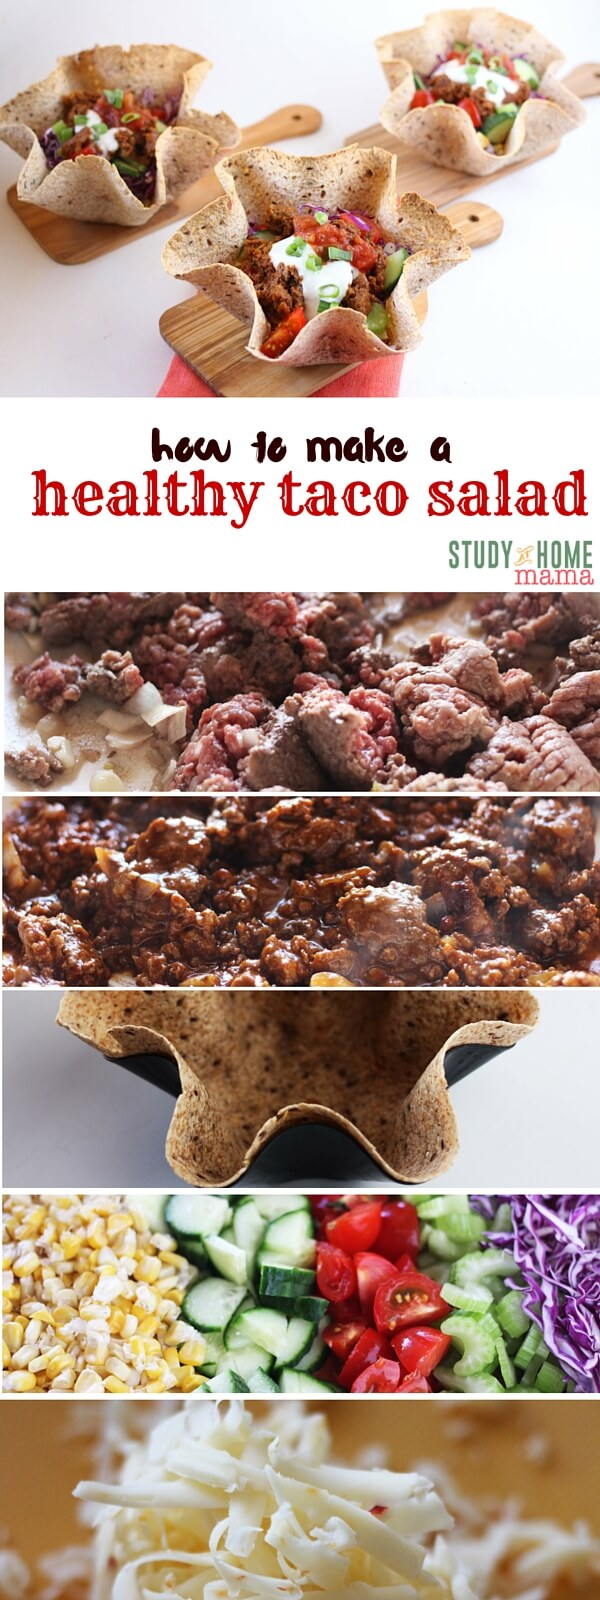 How to Make a Healthy Taco Salad - tips like how to season beef perfectly without salt, and healthy swaps like making your own crunchy taco bowl in less than 10 minutes. This healthy taco salad is a healthy meal idea that you can feel great about feeding to your family